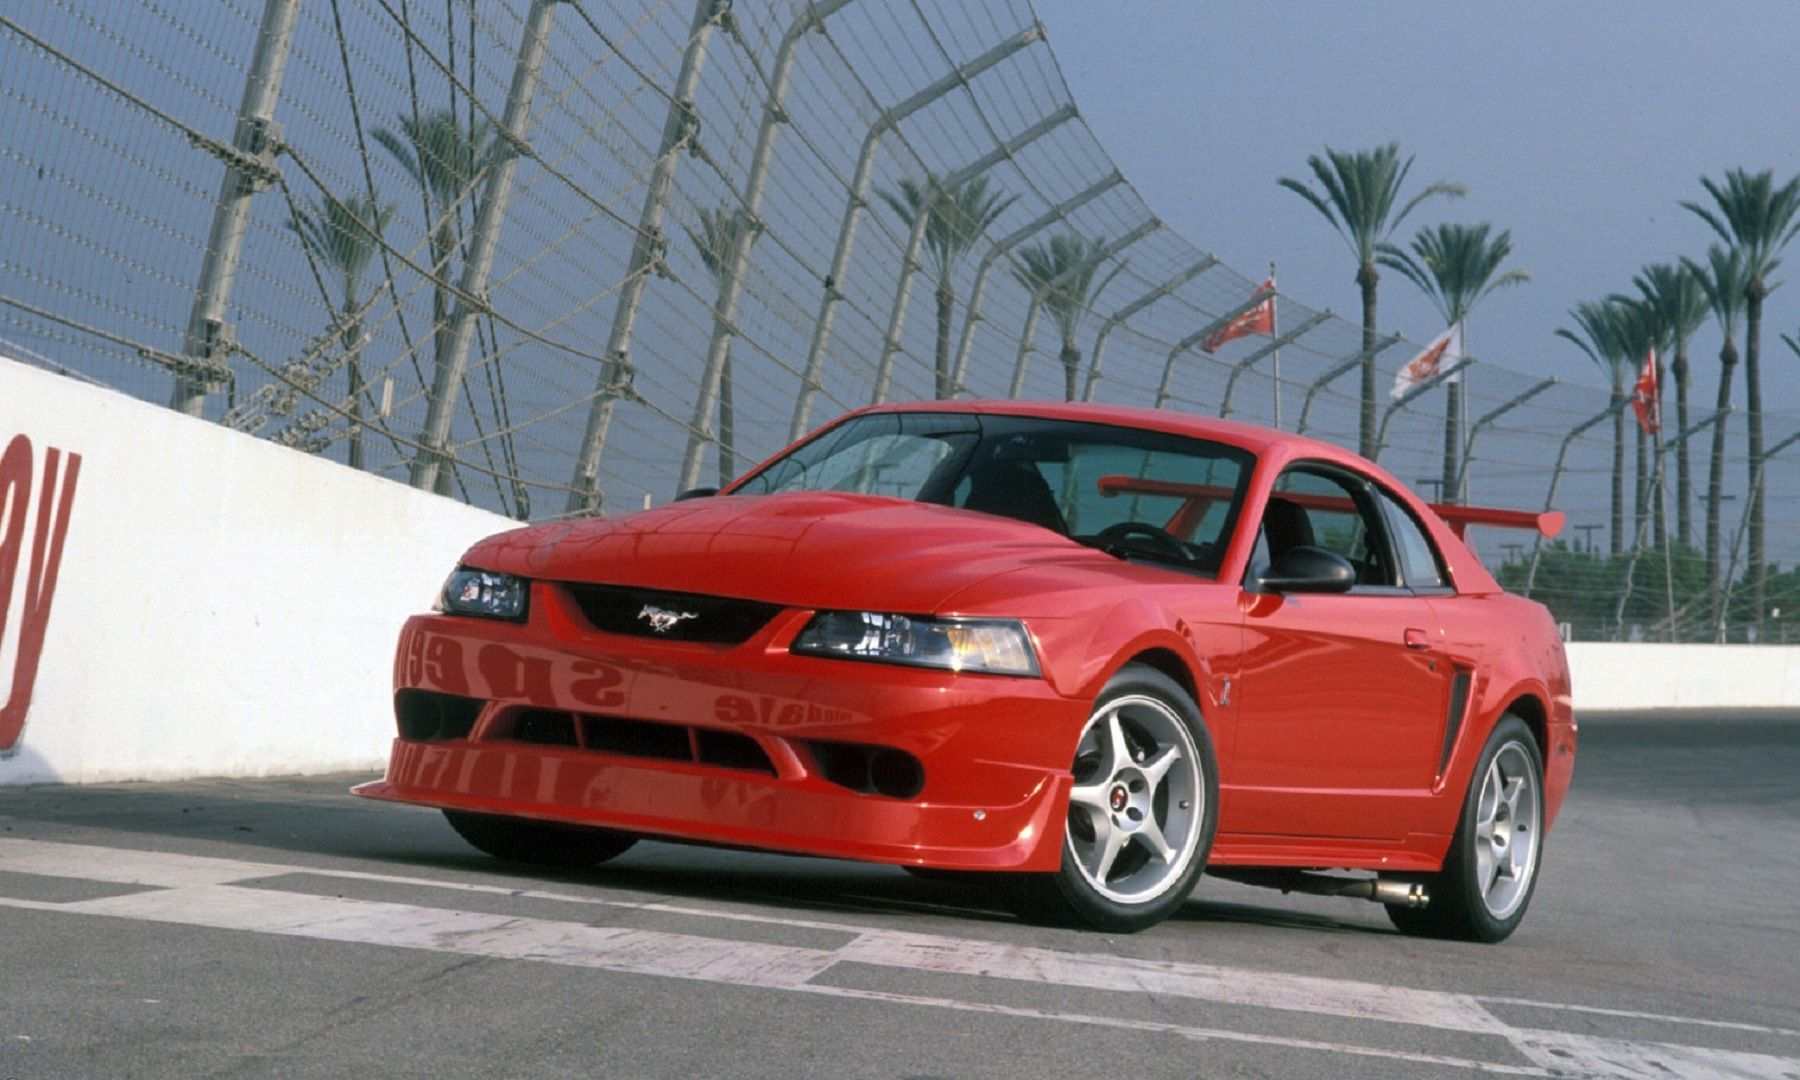 Mustang 20 Years Of Iconic Rides Ford Mustang Cobra 2000 Ford Mustang Mustang Cobra